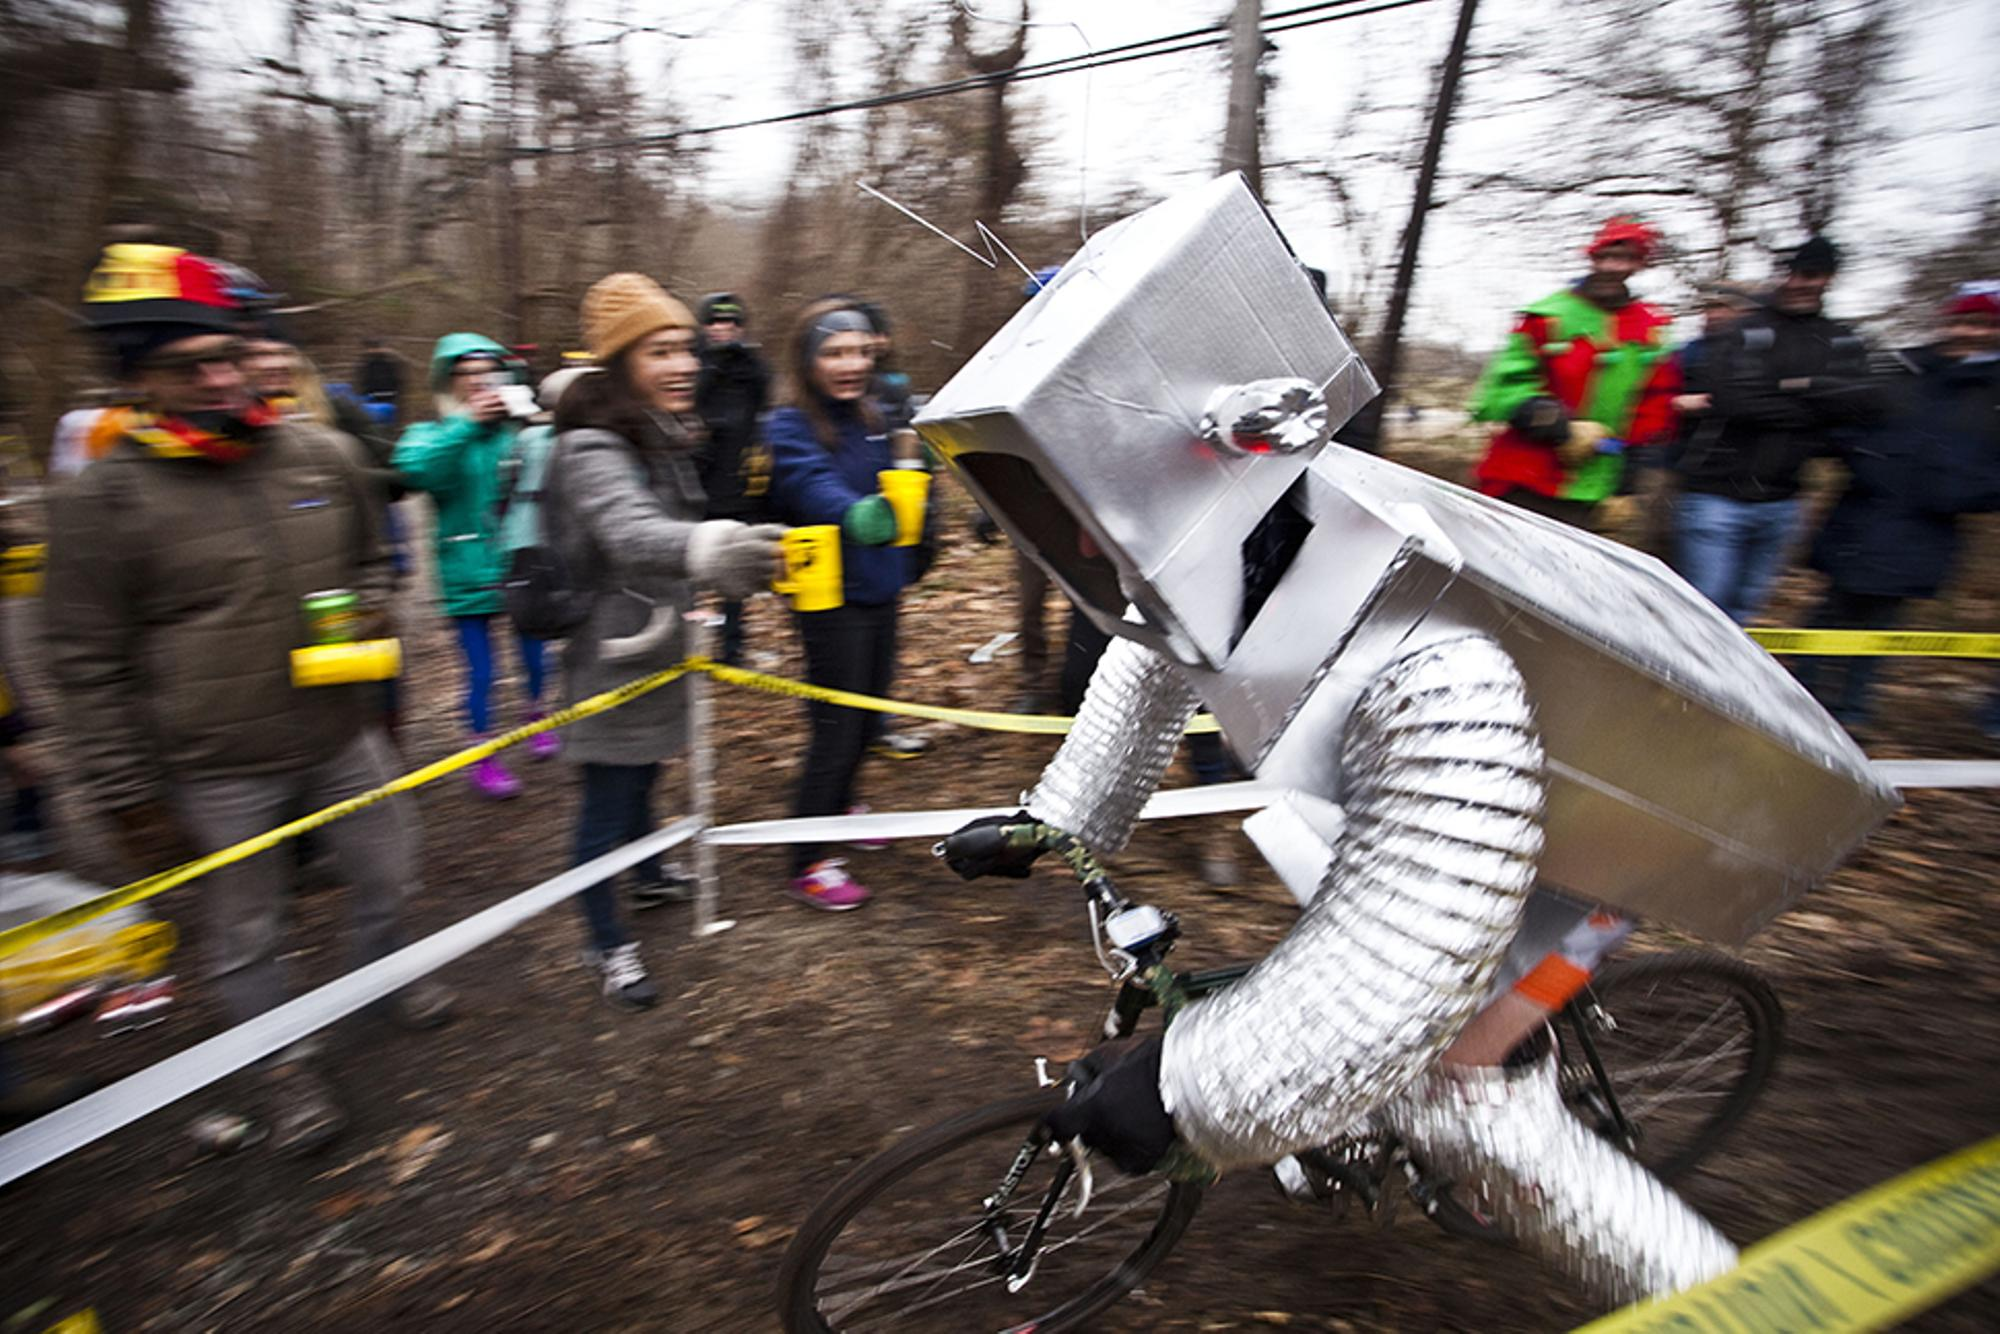 Guest Gallery: Chris King at the 2013 SSCXWC in Philly